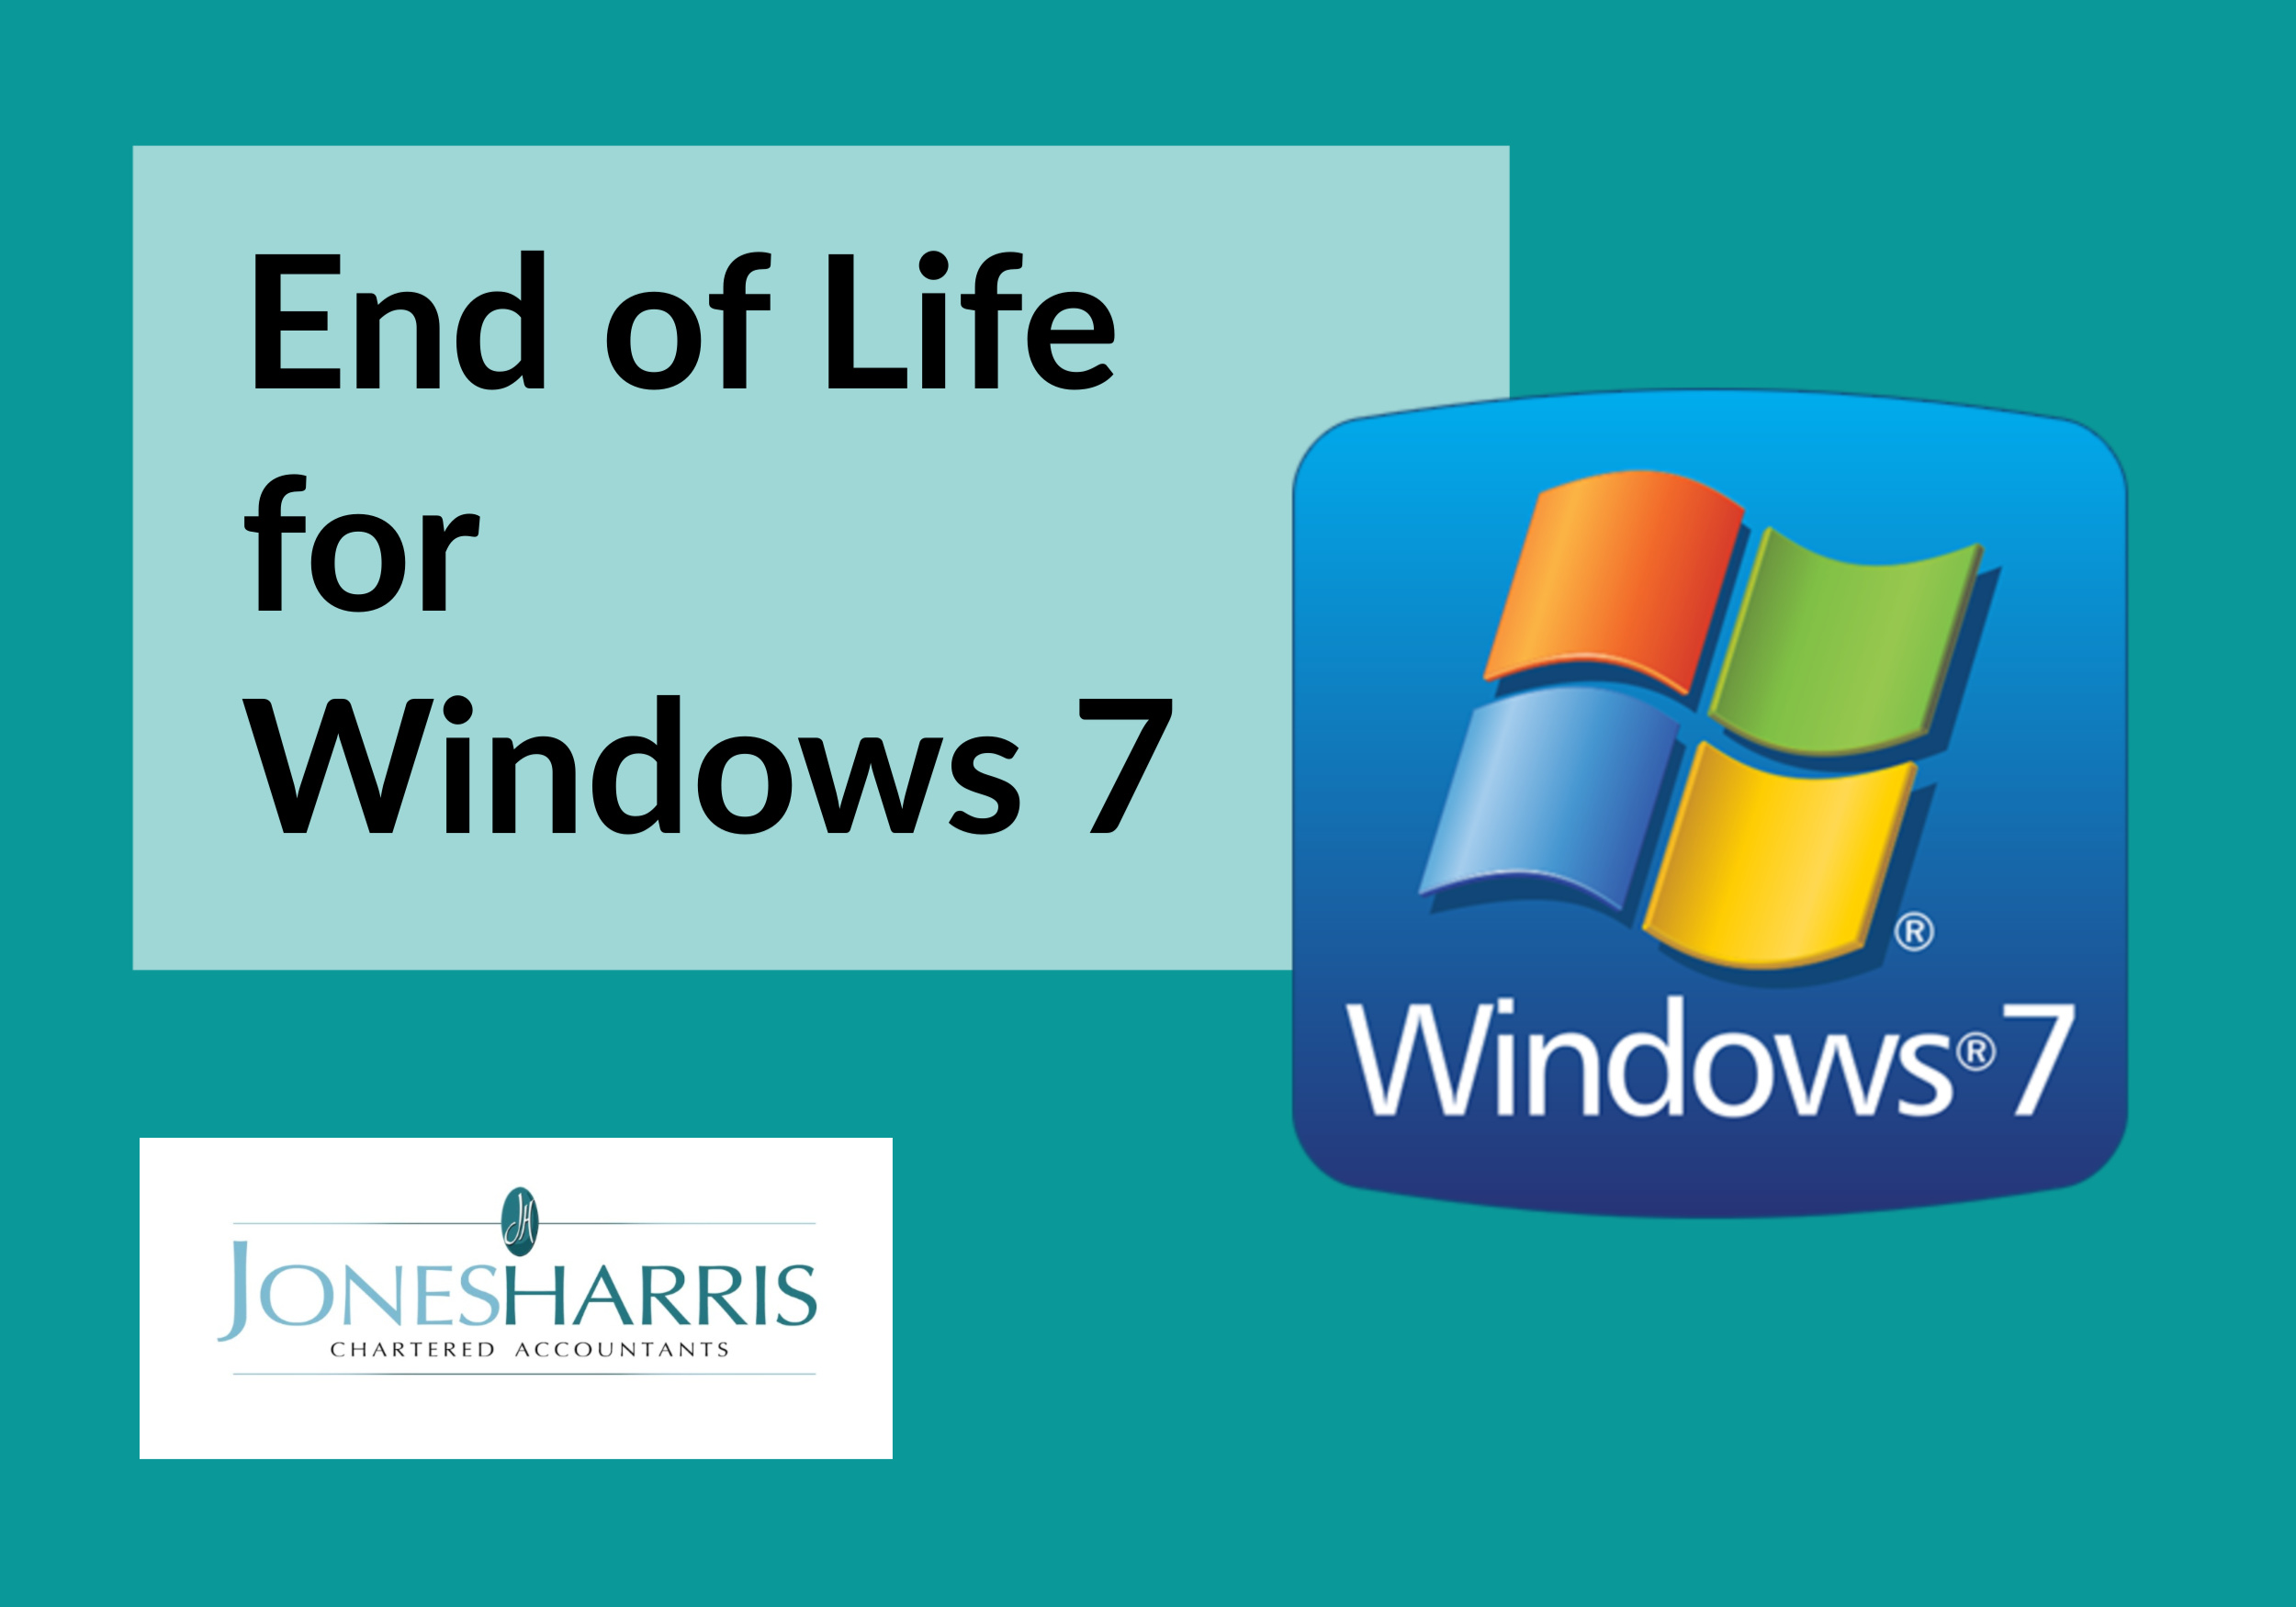 End of Life for Windows 7, with Jones Harris Accountants